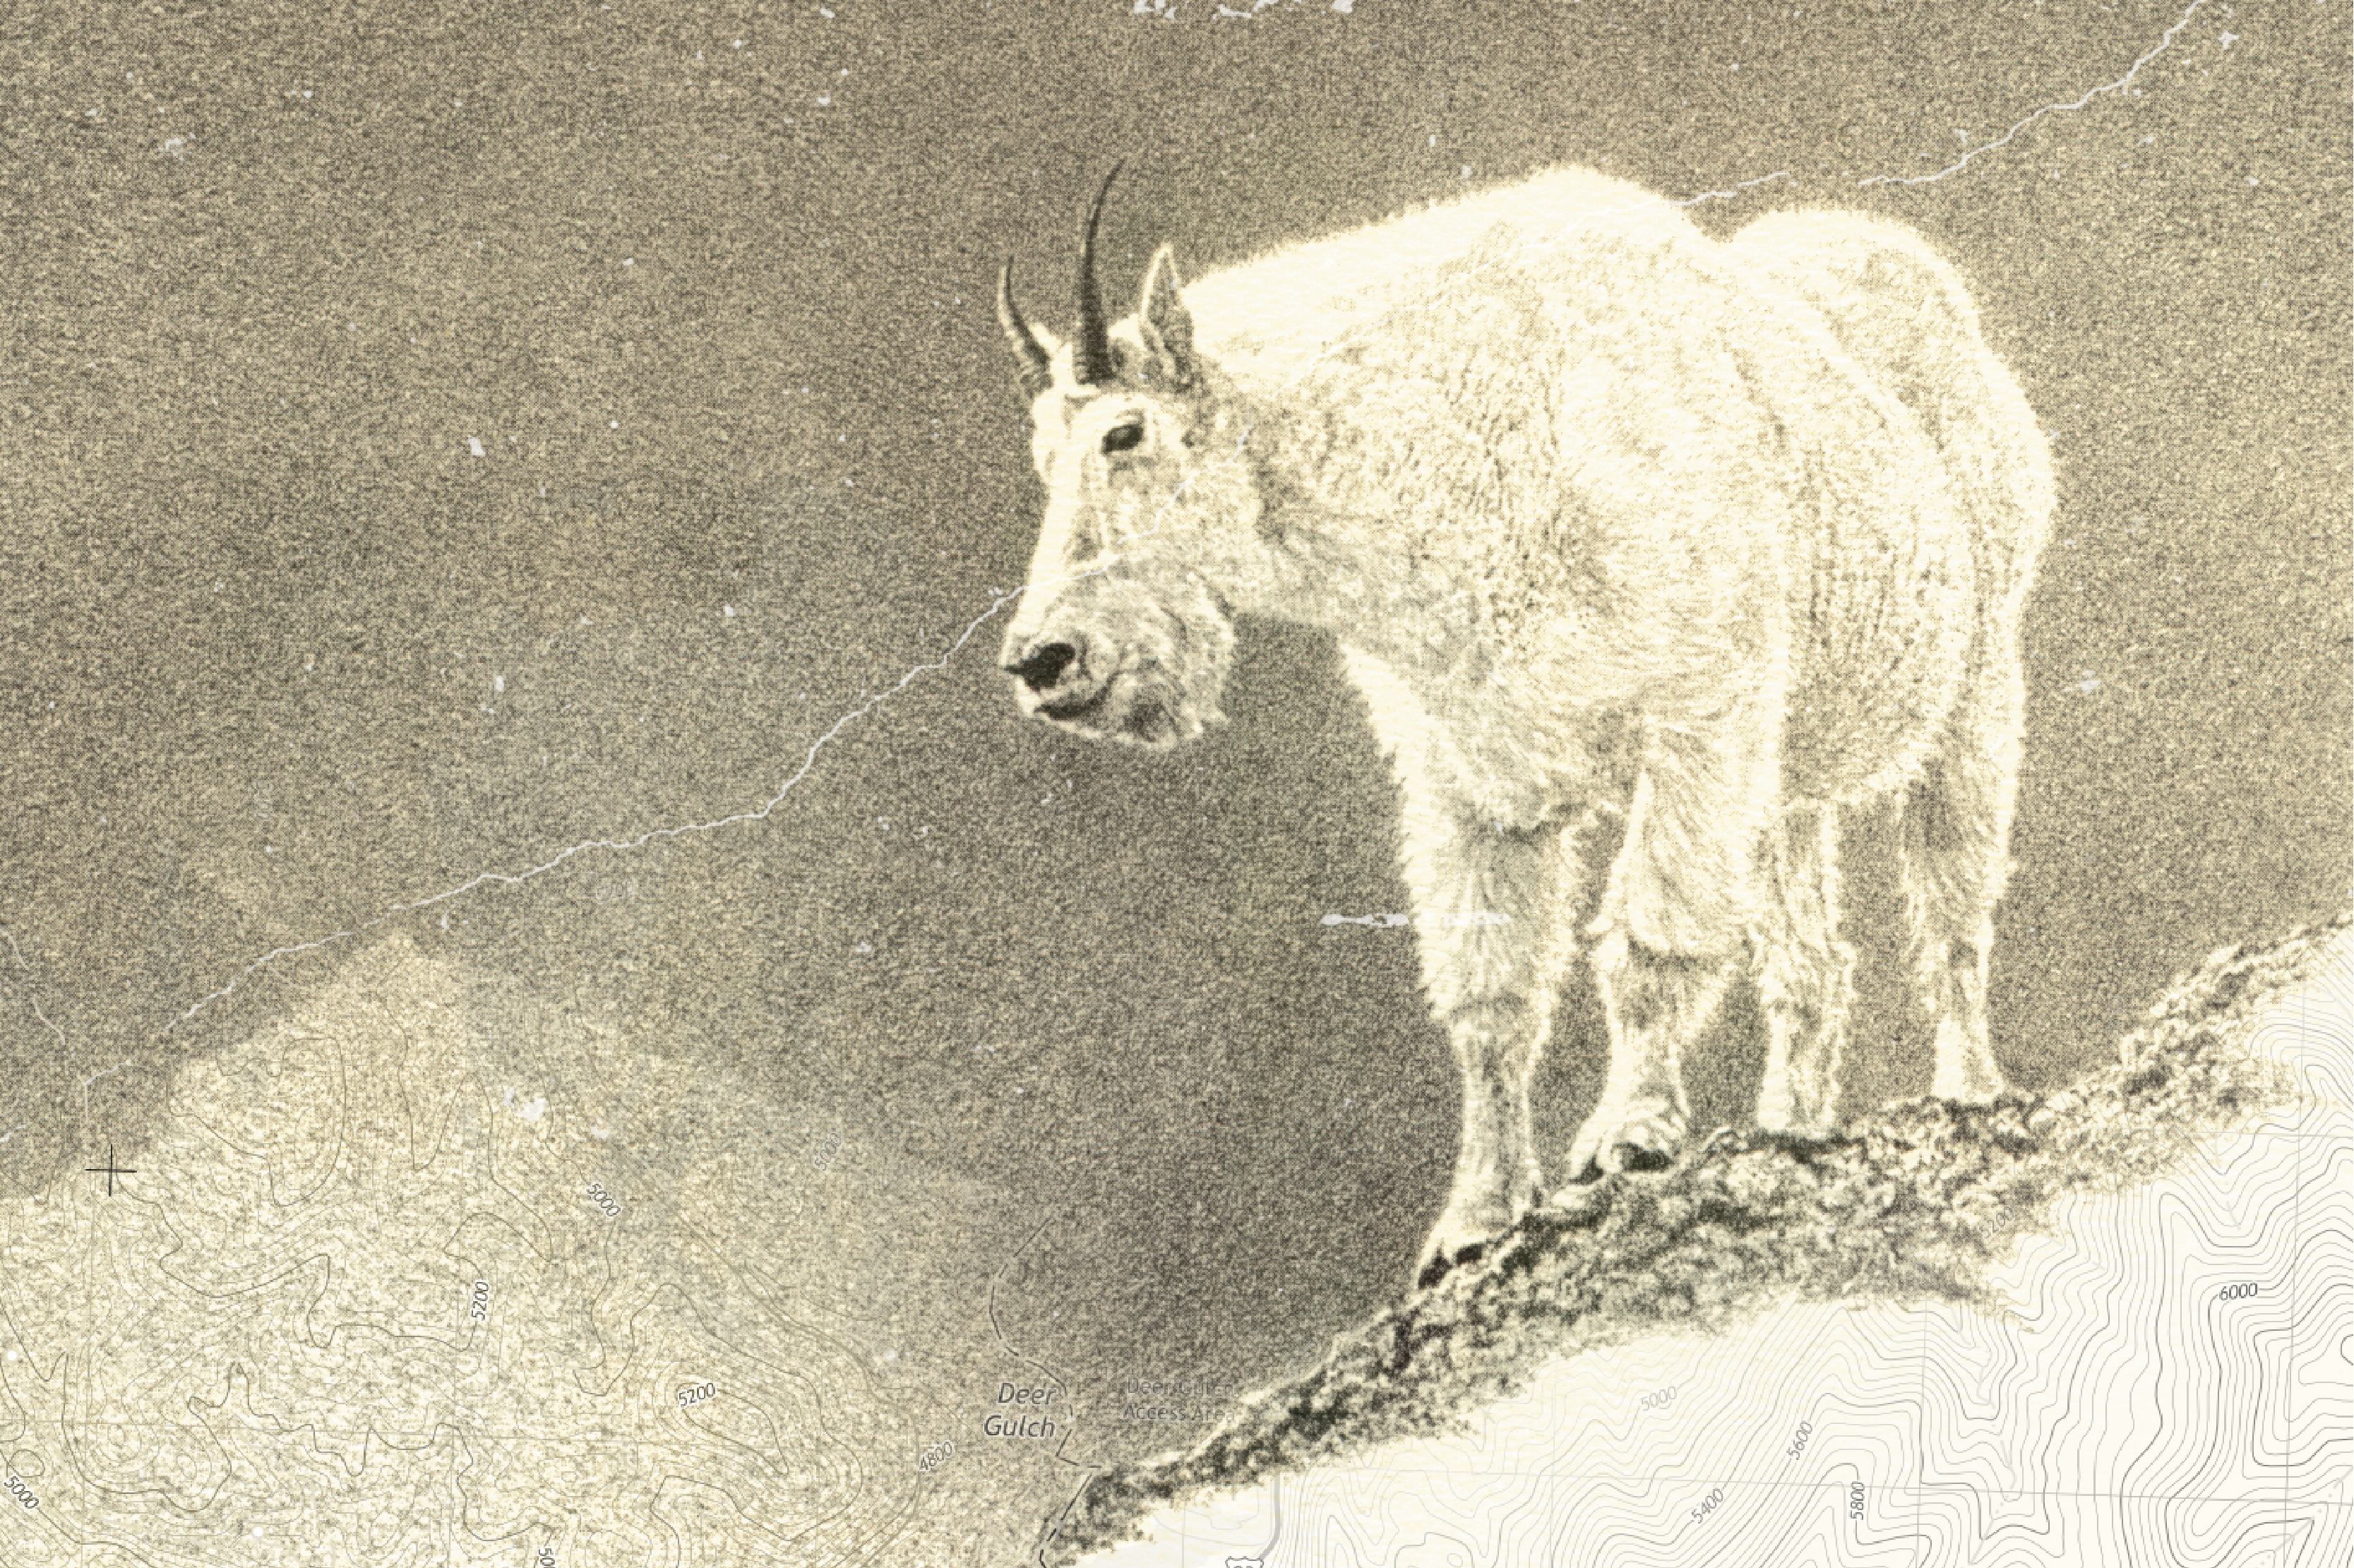 Pencil drawing of a Mountain Goat by Edson Fichter